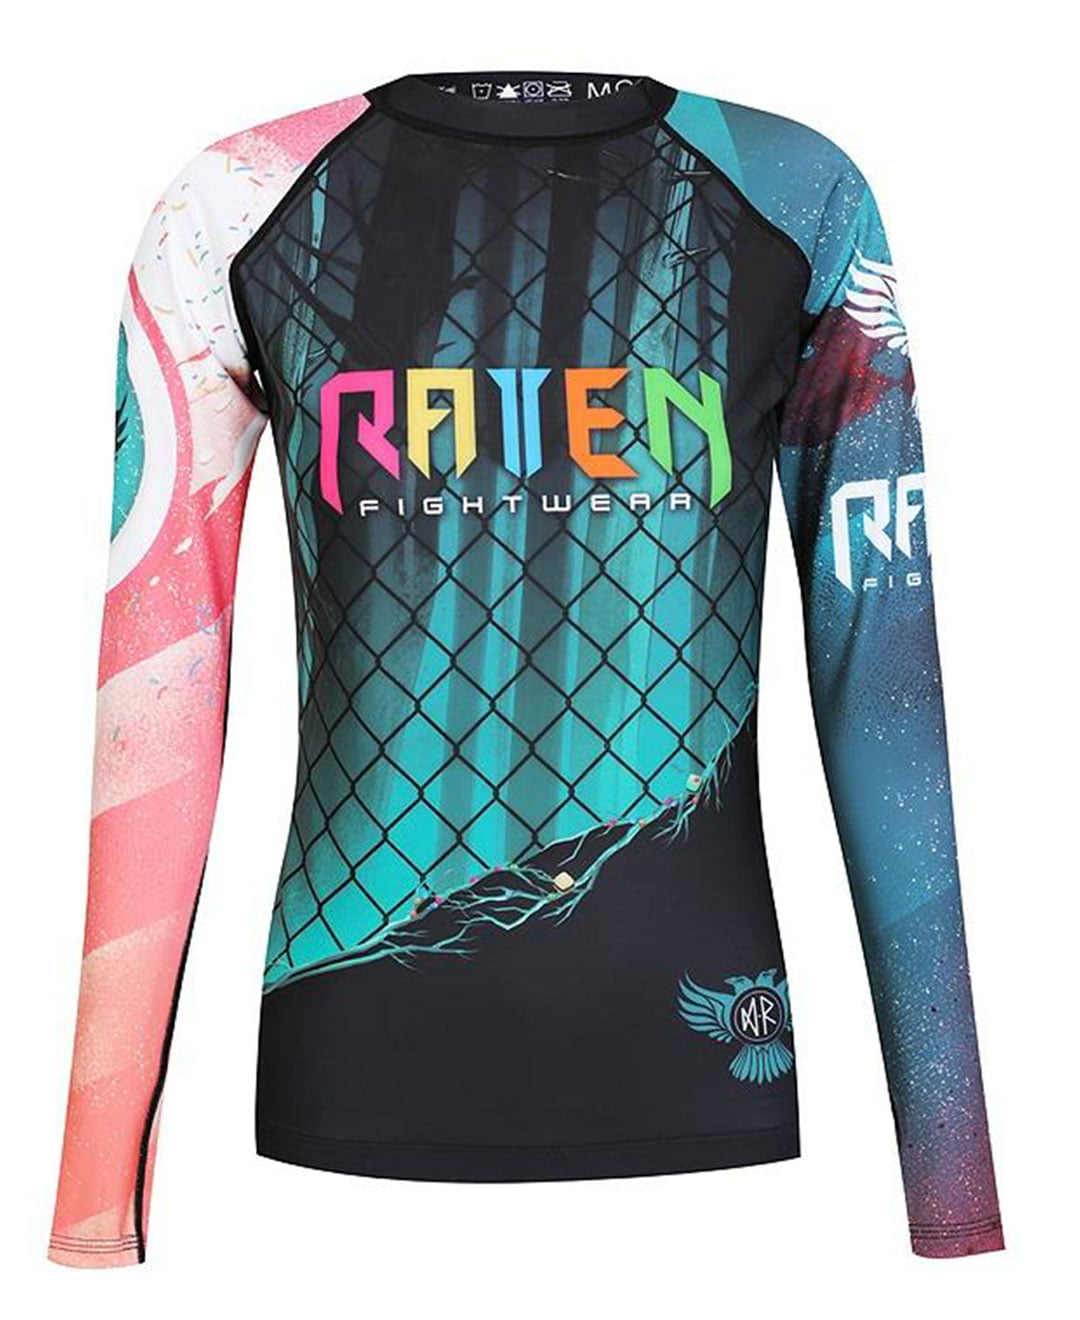 Raven Fightwear Women's The Candy Rash Guard MMA BJJ Black 2X-Small by Raven Fightwear